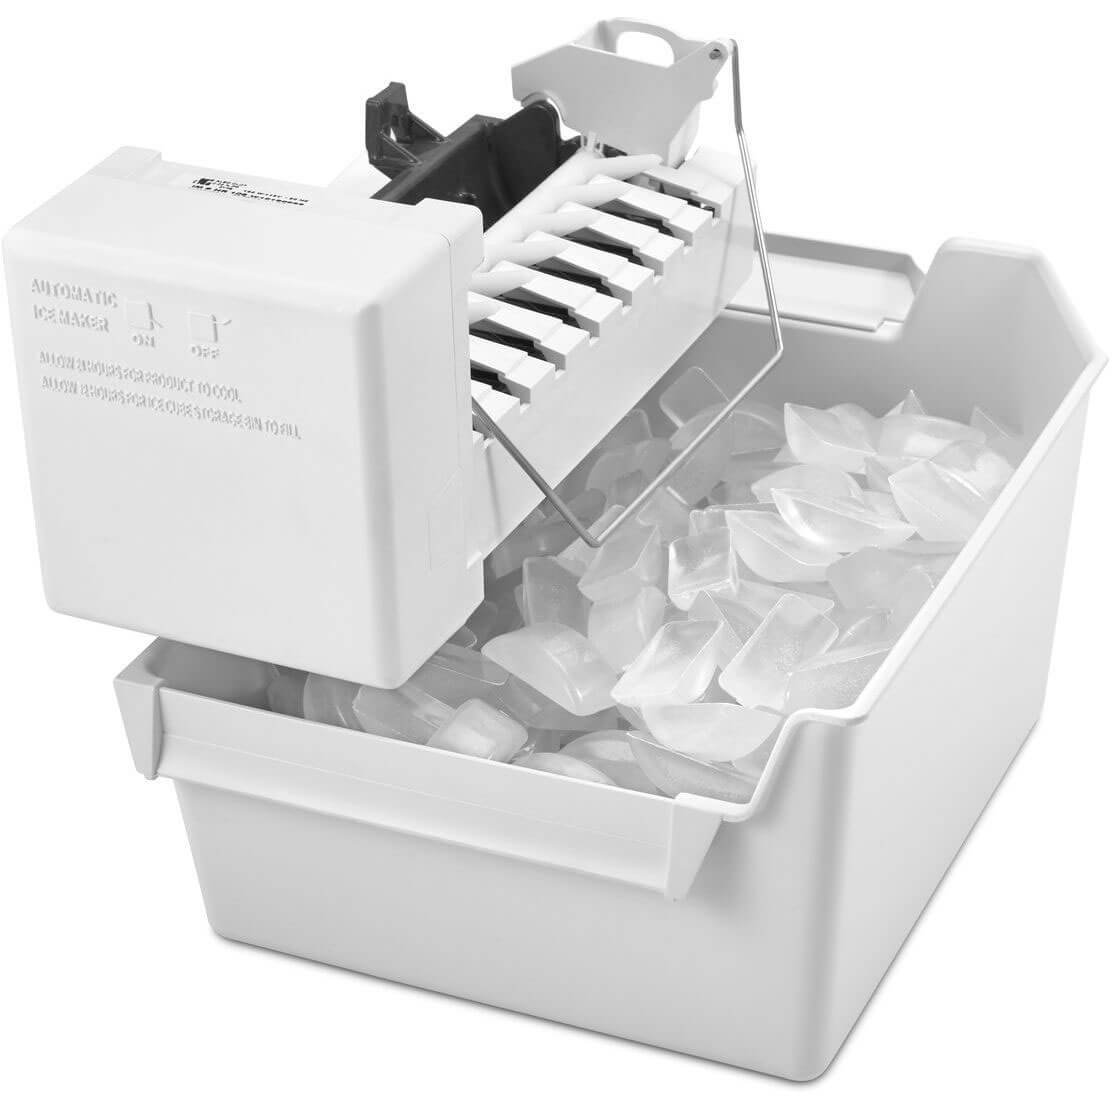 Whirlpool IceMaker Kit ECKMFEZ2 EZ Connect